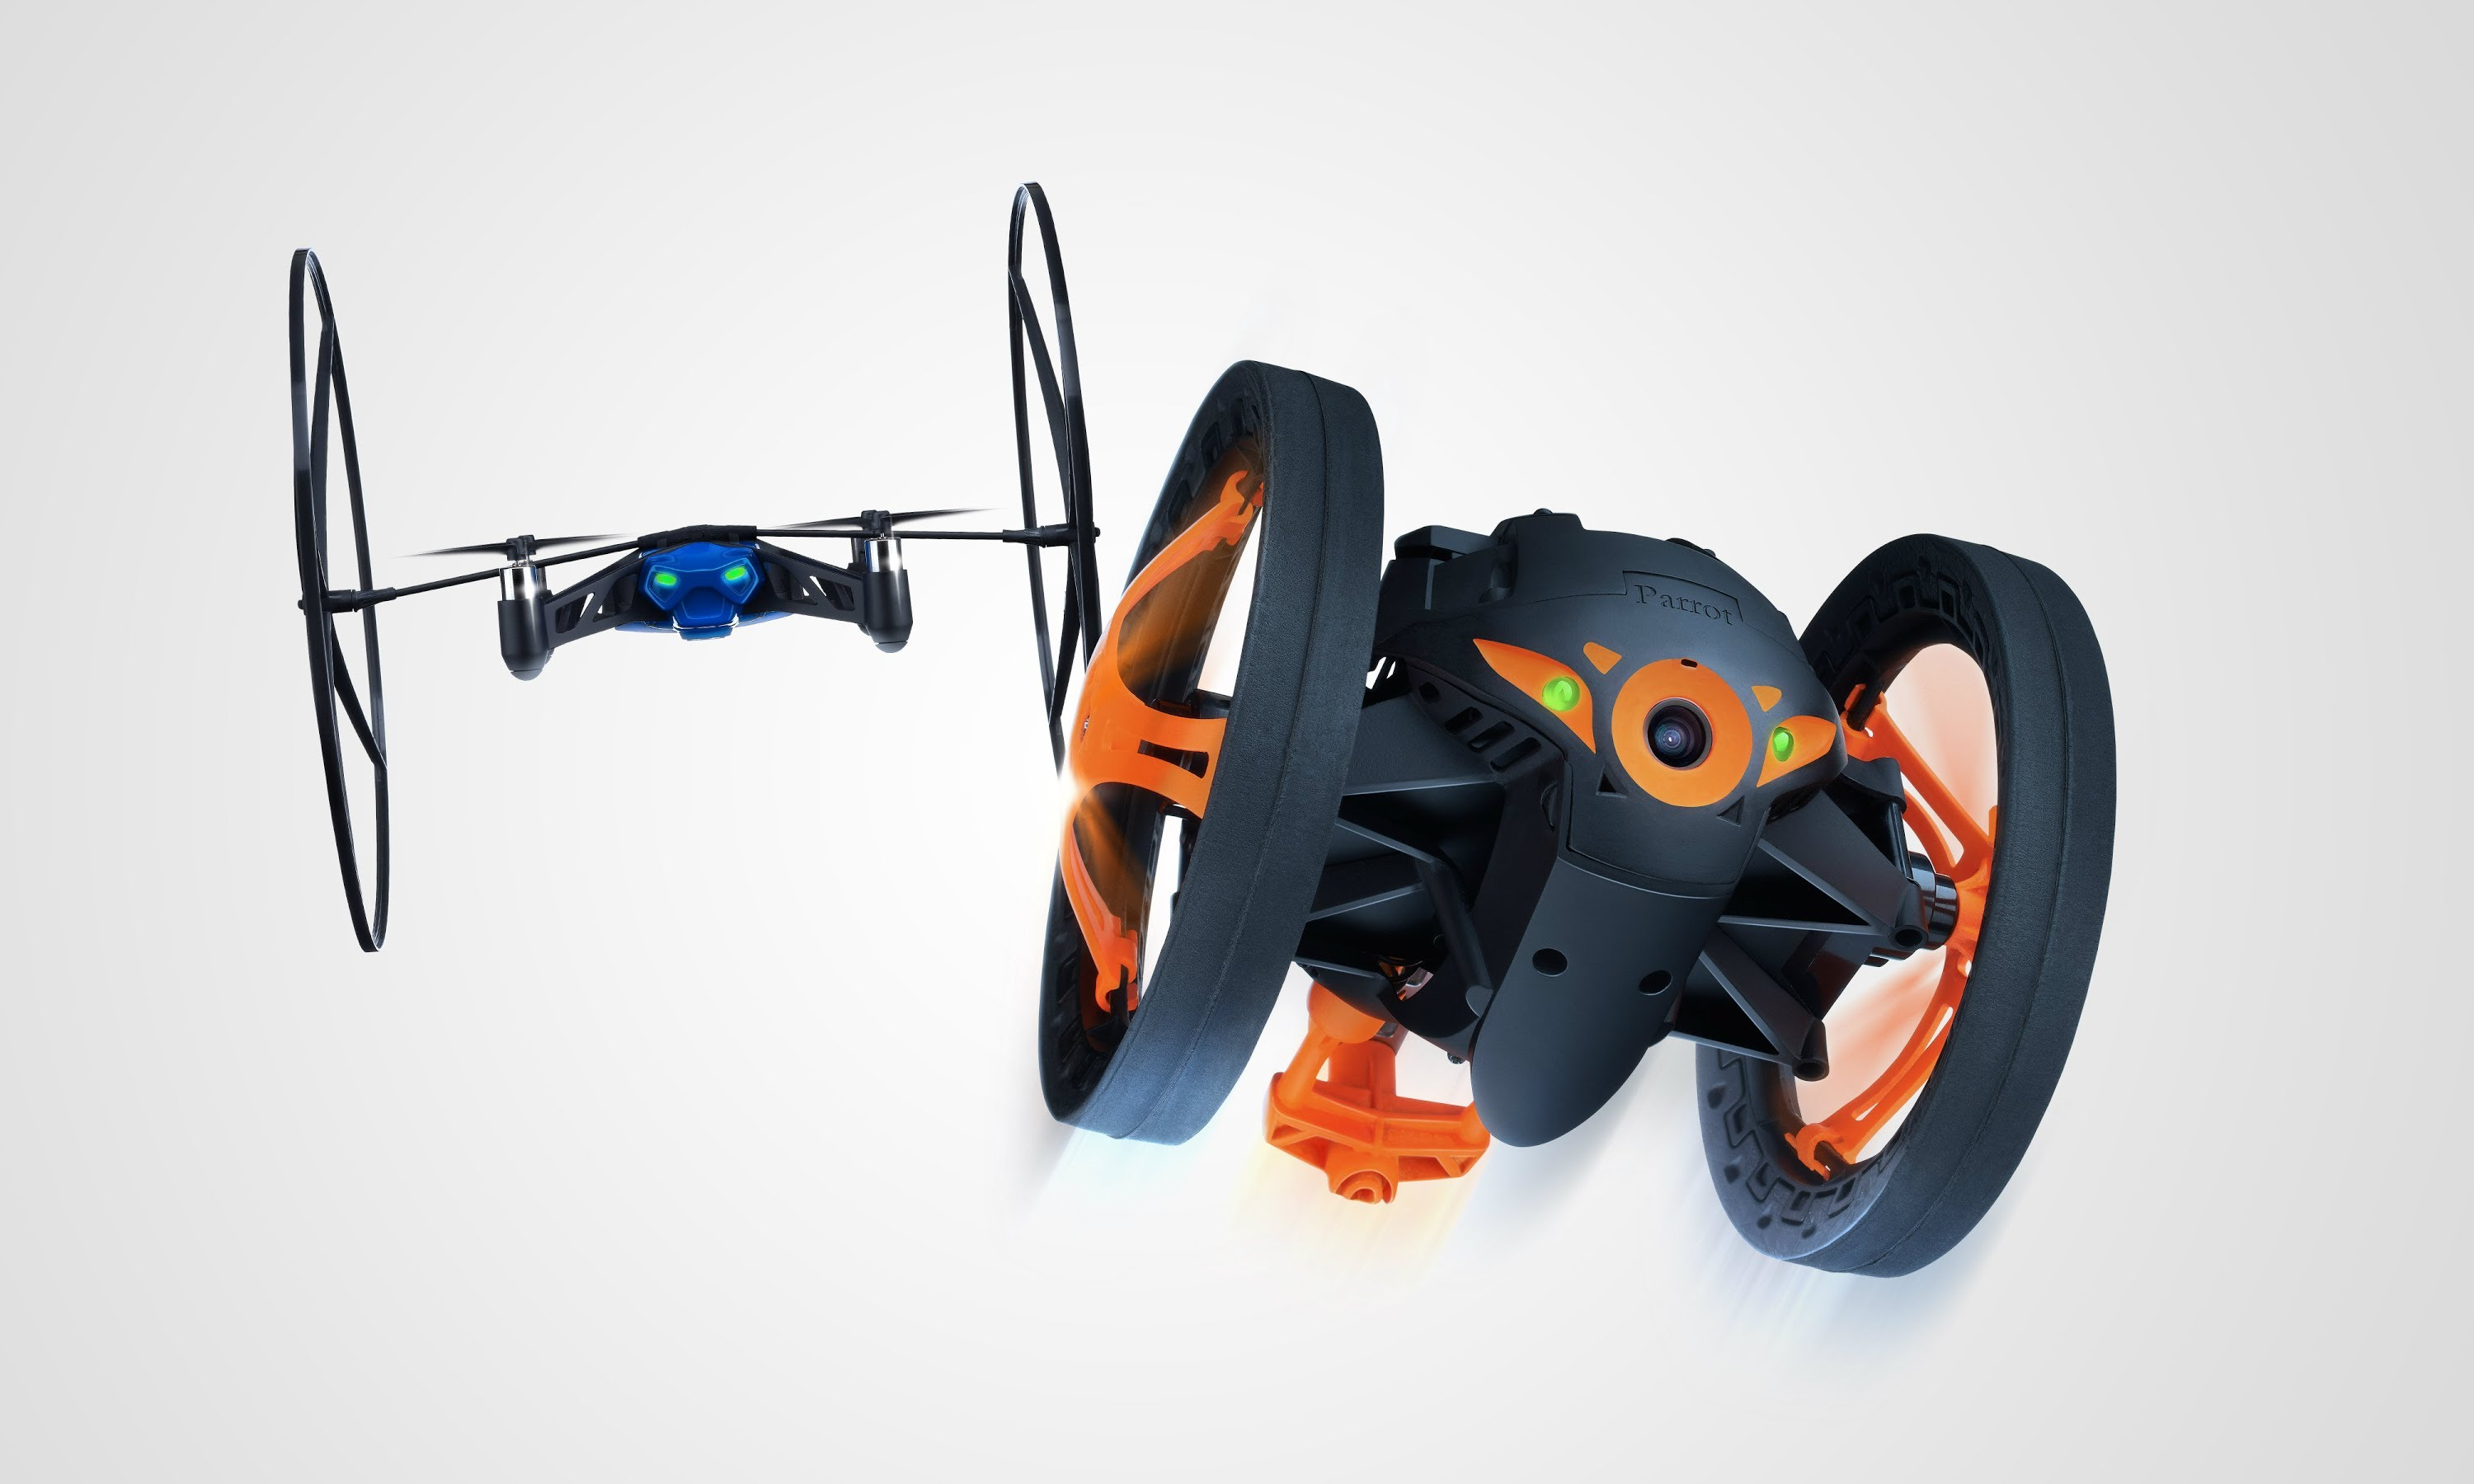 Video af Parrot MiniDrone & Jumping Sumo